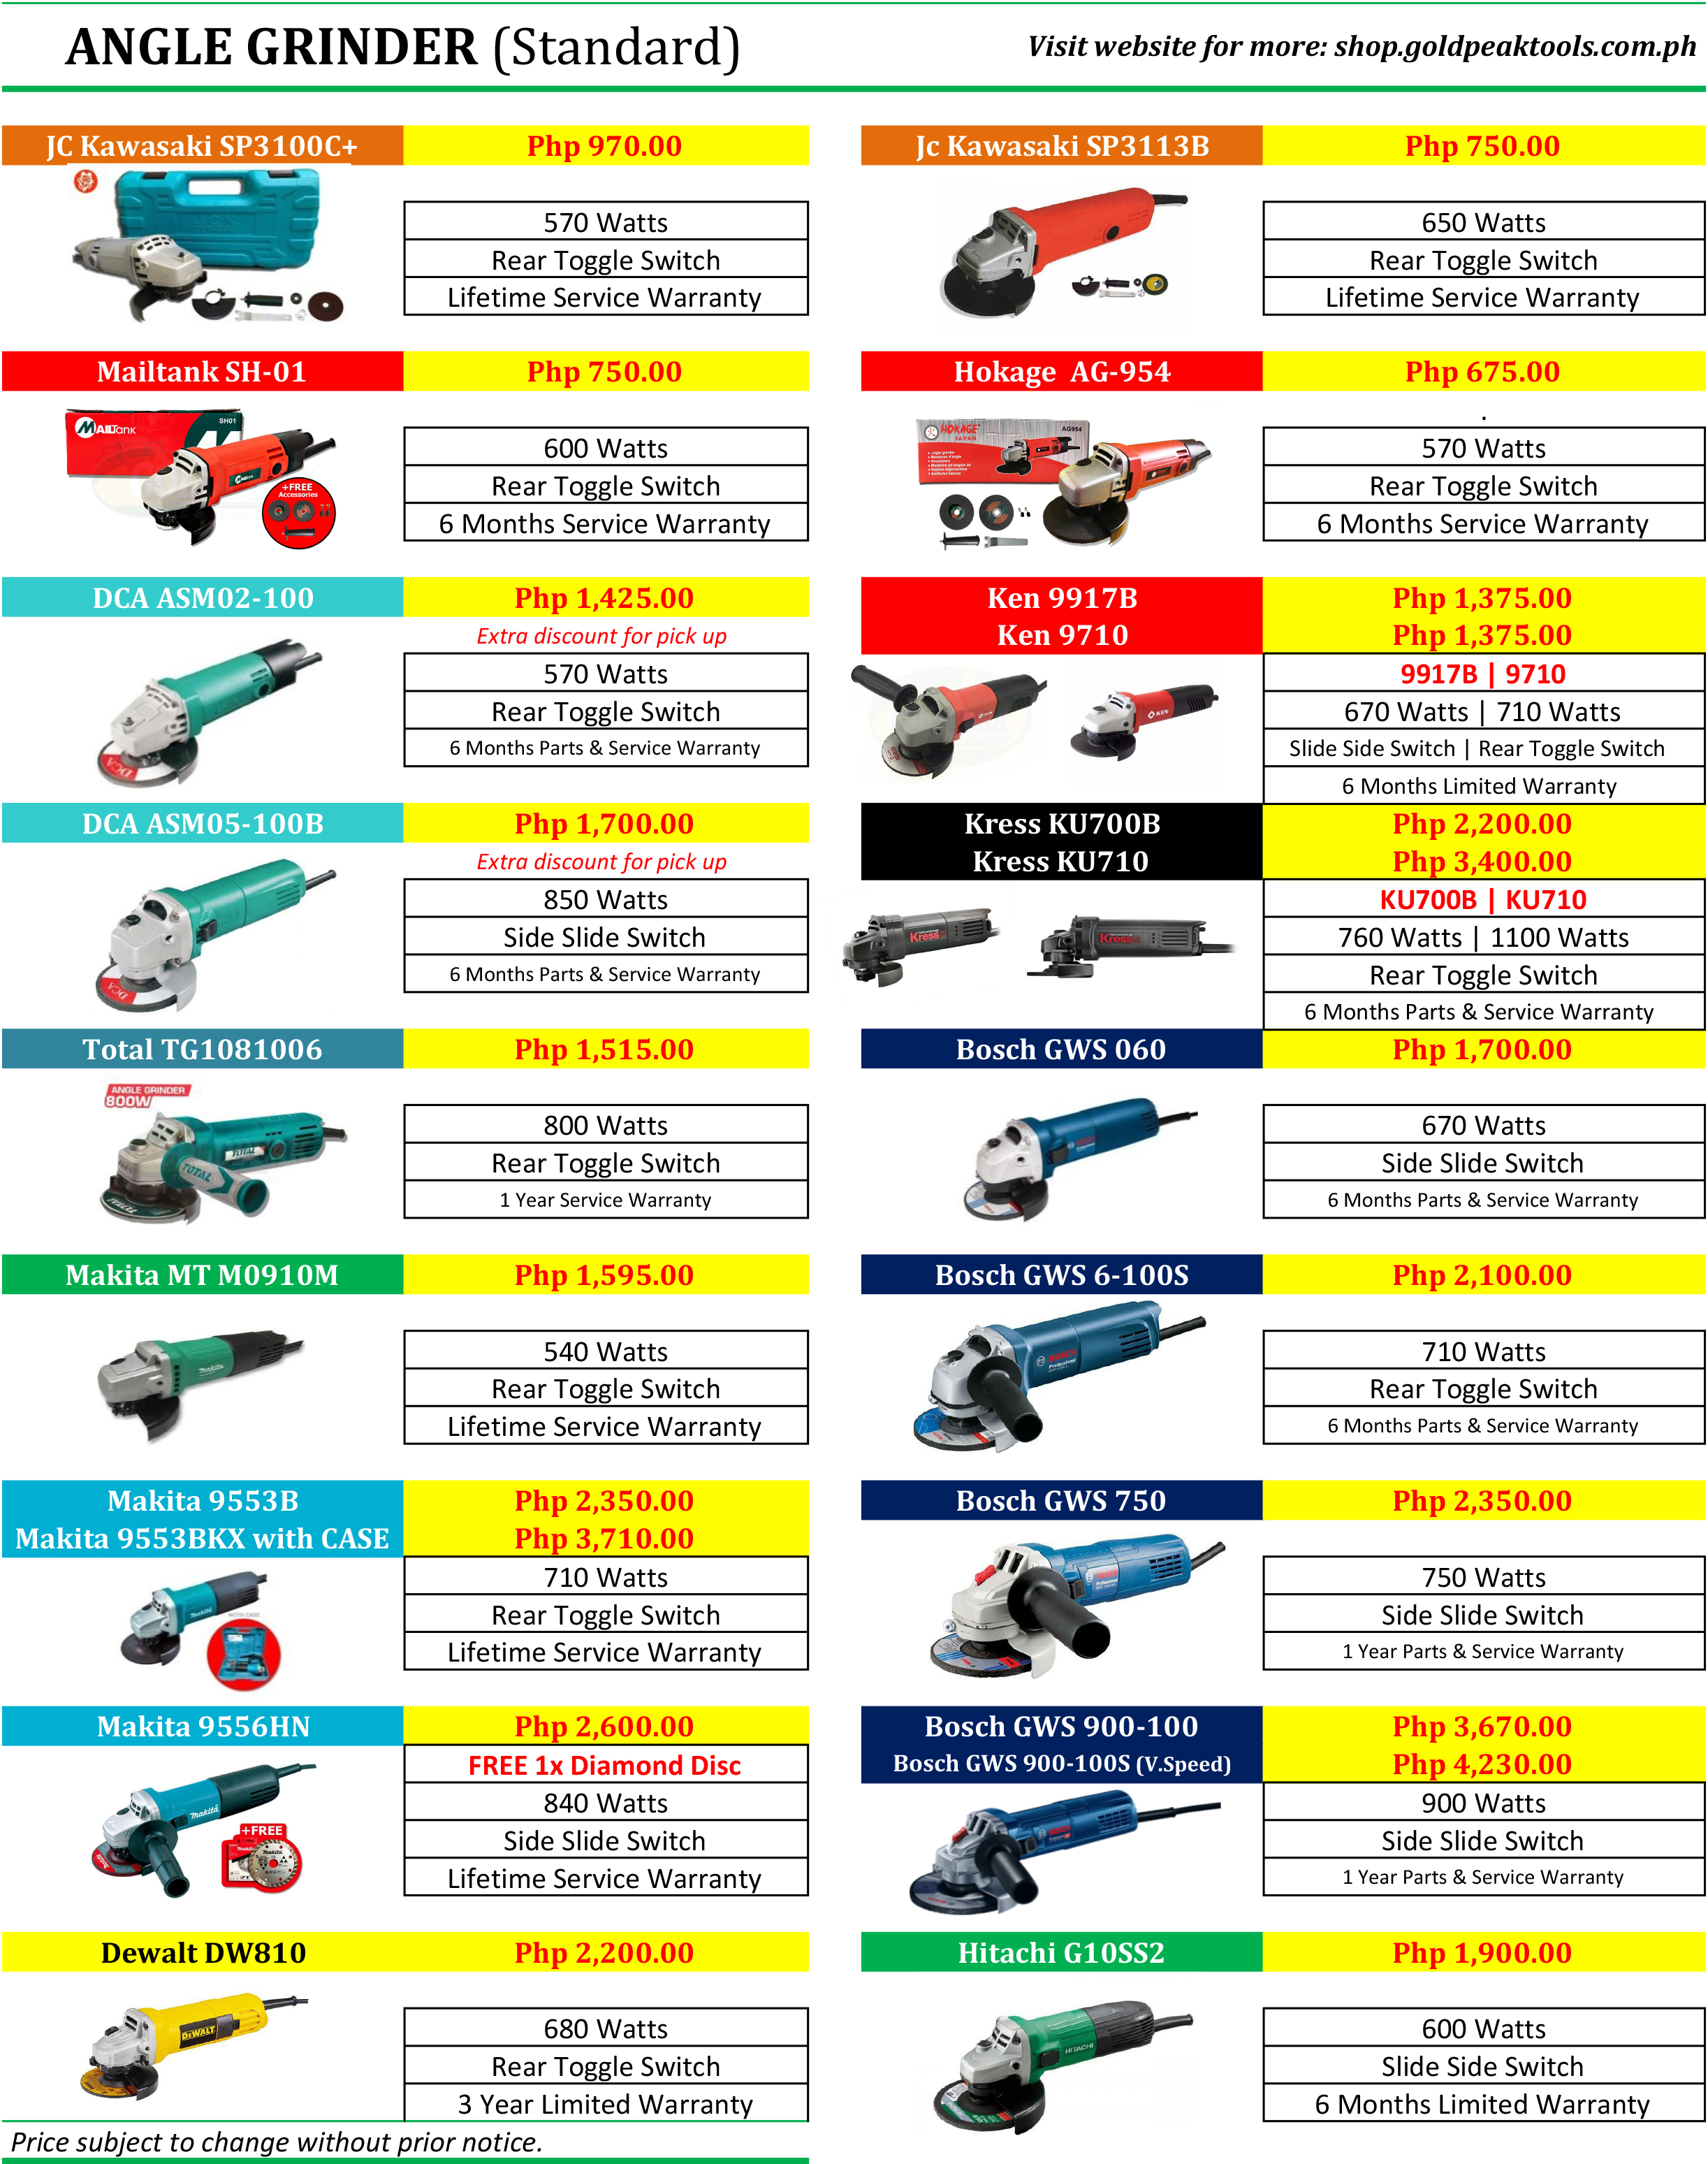 75a7e73febad6 Promos by Goldpeak Tools PH